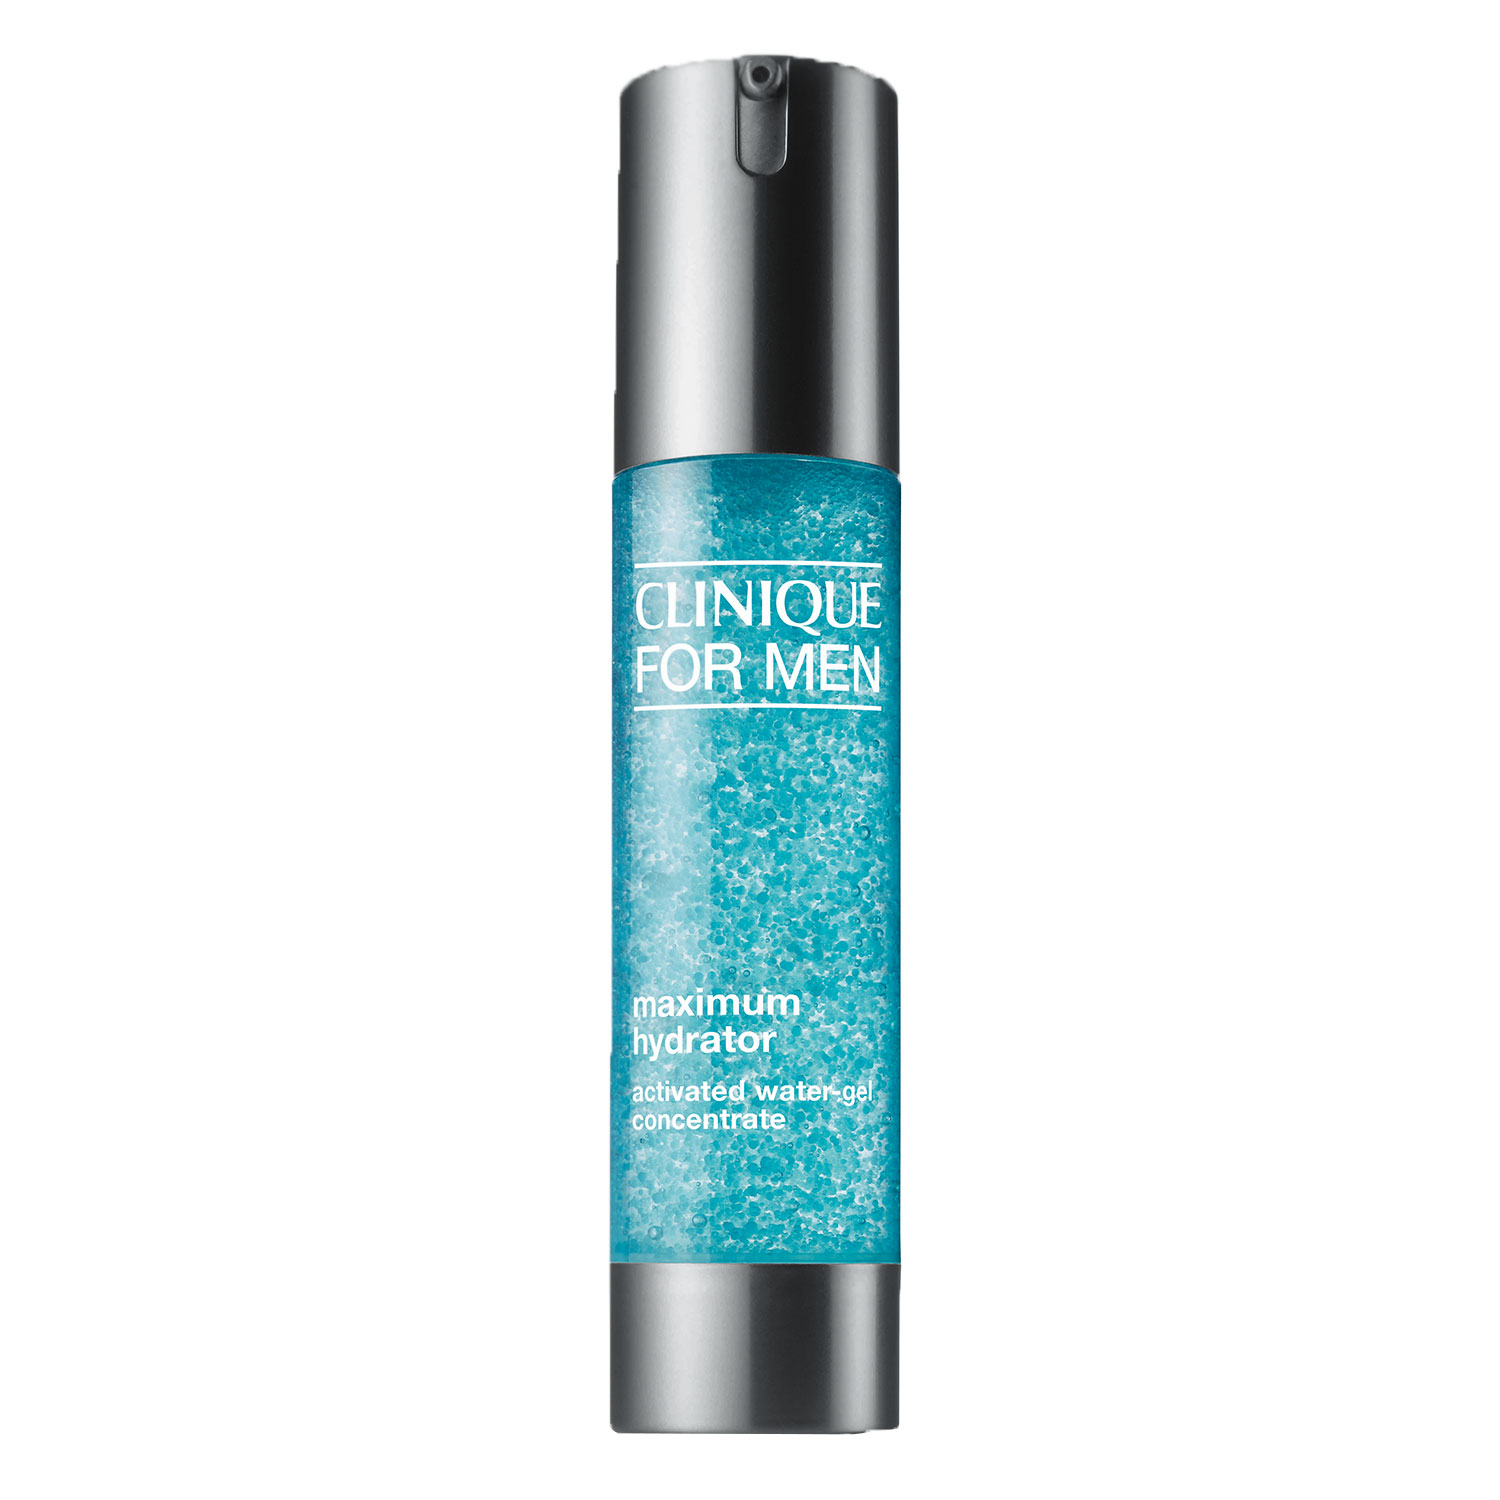 Clinique For Men - Maximum Hydrator Activated Water-Gel Concentrate